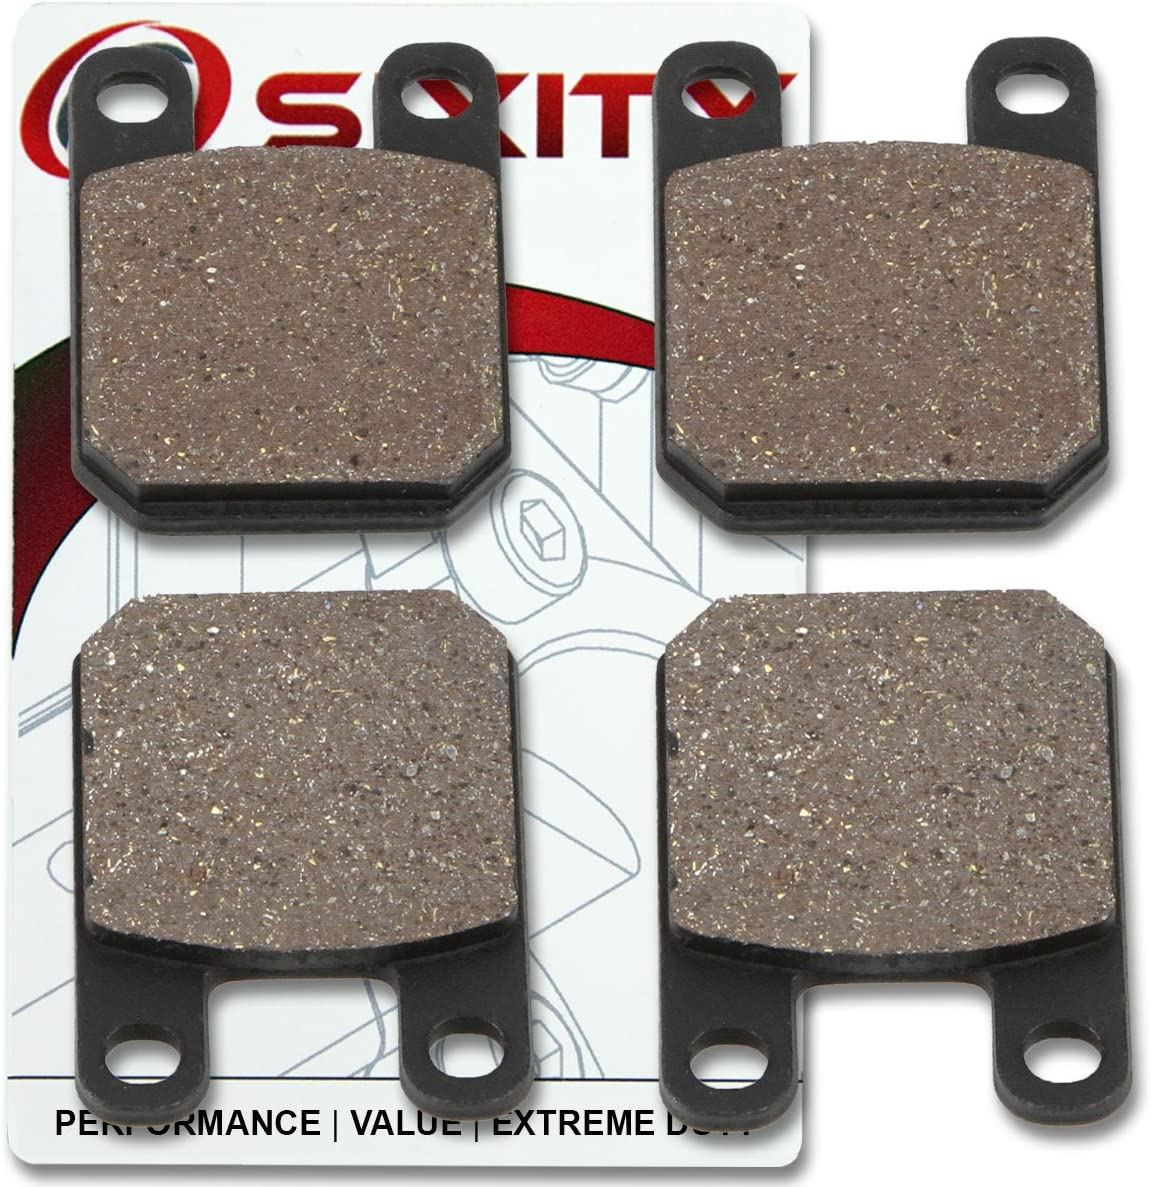 Sixity Front Rear Ceramic Brake Pads 1989-1996 for Maico M-Star Rotor Models Set Full Kit Complete